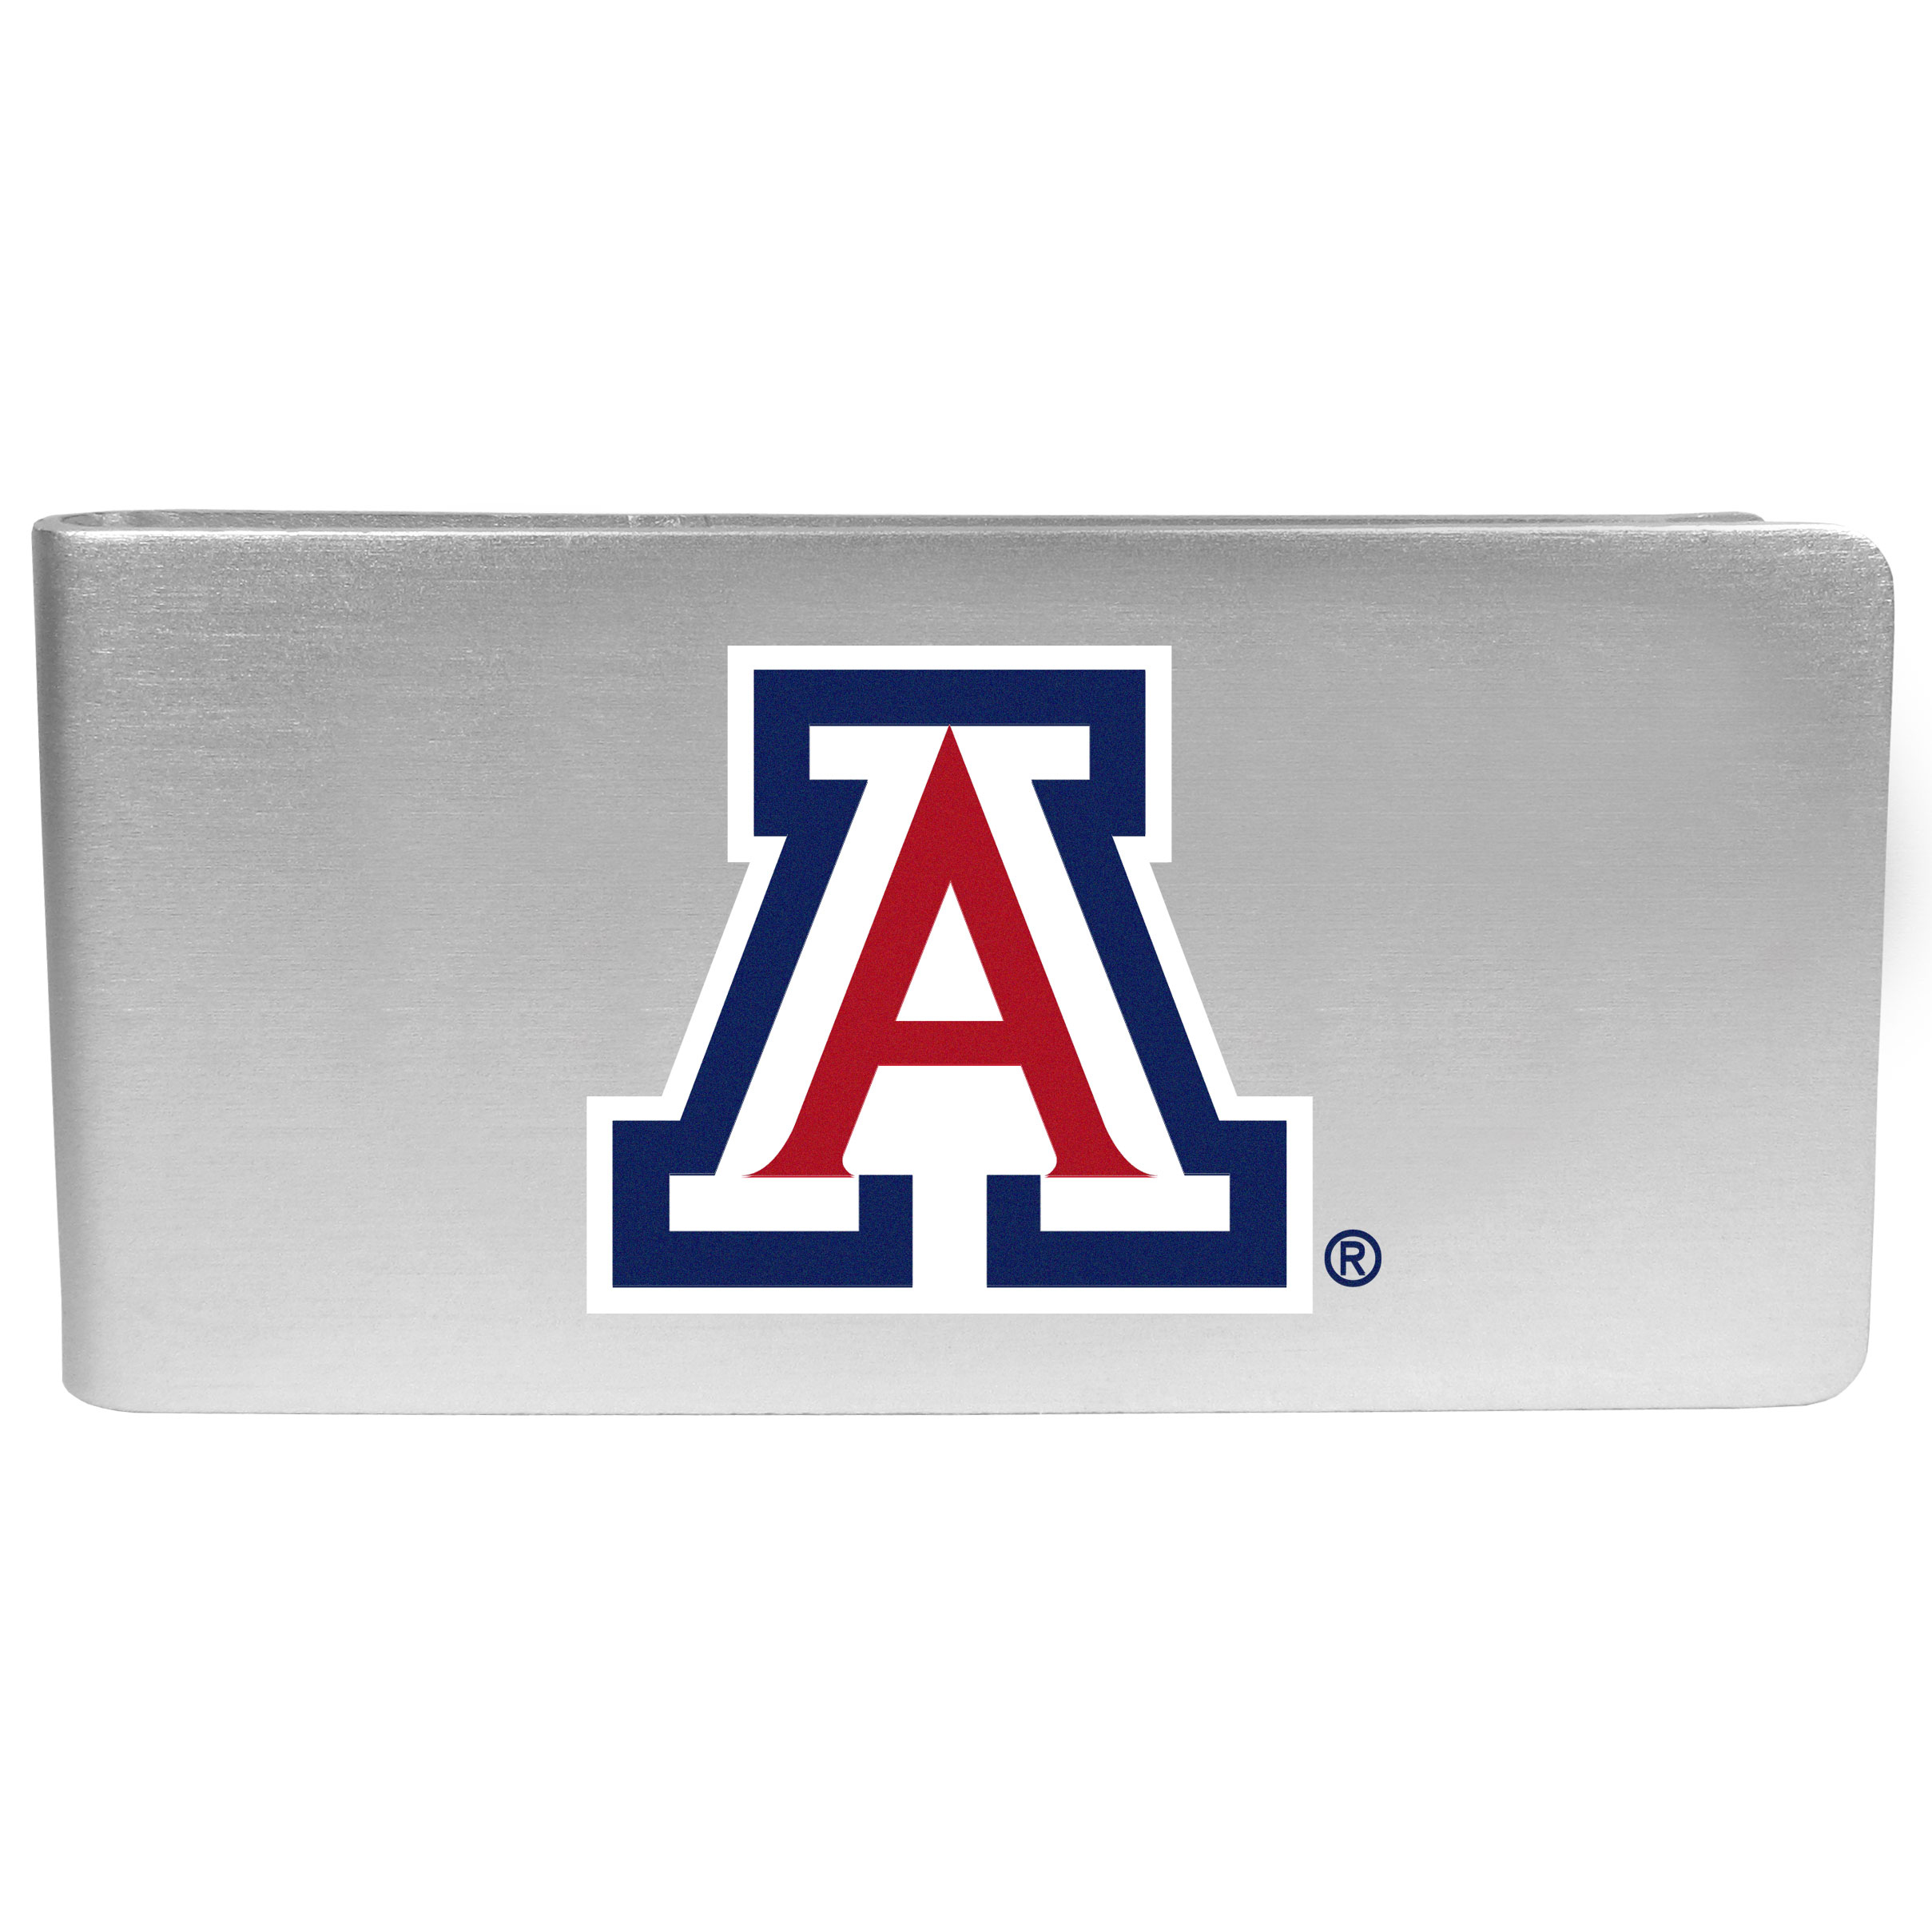 Arizona Wildcats Logo Money Clip - Our brushed metal money clip has classic style and functionality. The attractive clip features the Arizona Wildcats logo expertly printed on front.